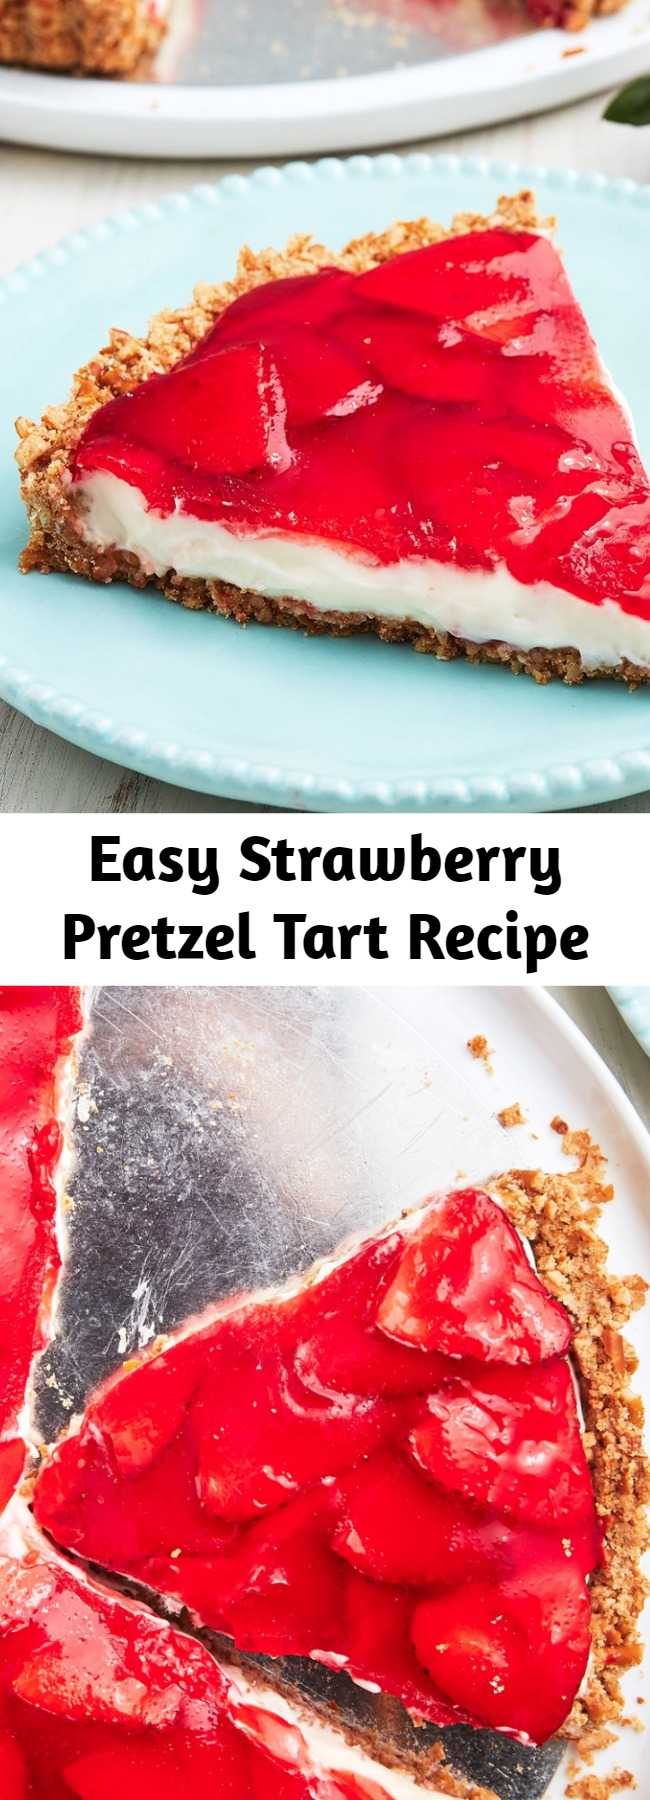 Easy Strawberry Pretzel Tart Recipe - Looking for an easy summer dessert recipe? This Strawberry Pretzel Dessert, also known as Strawberry Pretzel Salad, is the perfect one! A little sweet, a little savory—we're obsessed. Our Strawberry Pretzel Tart is the most bizarrely delicious salty-sweet dessert.